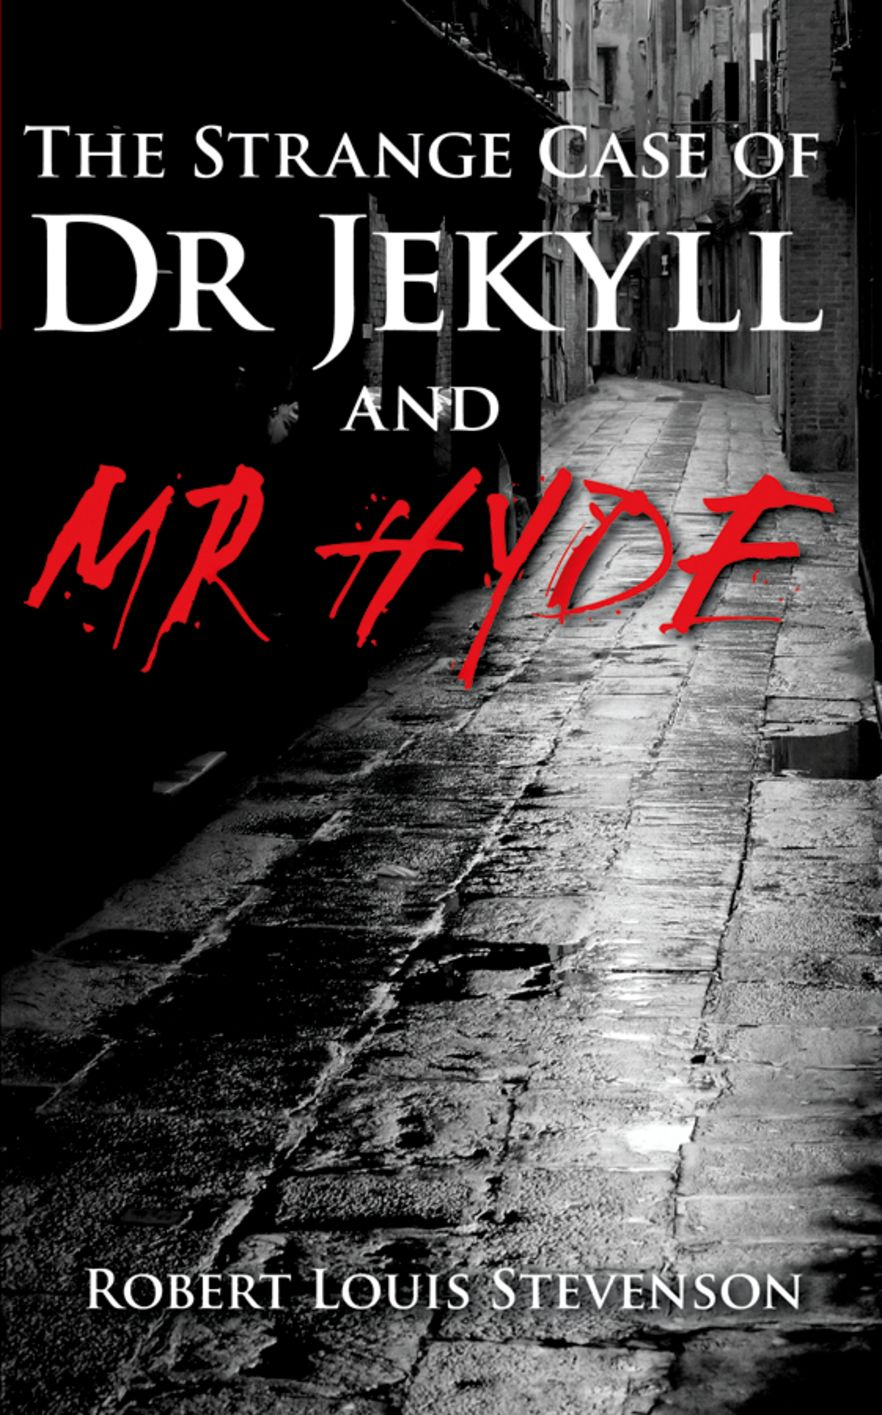 Rollercoasters The Strange Case of Dr Jekyll and Mr Hyde